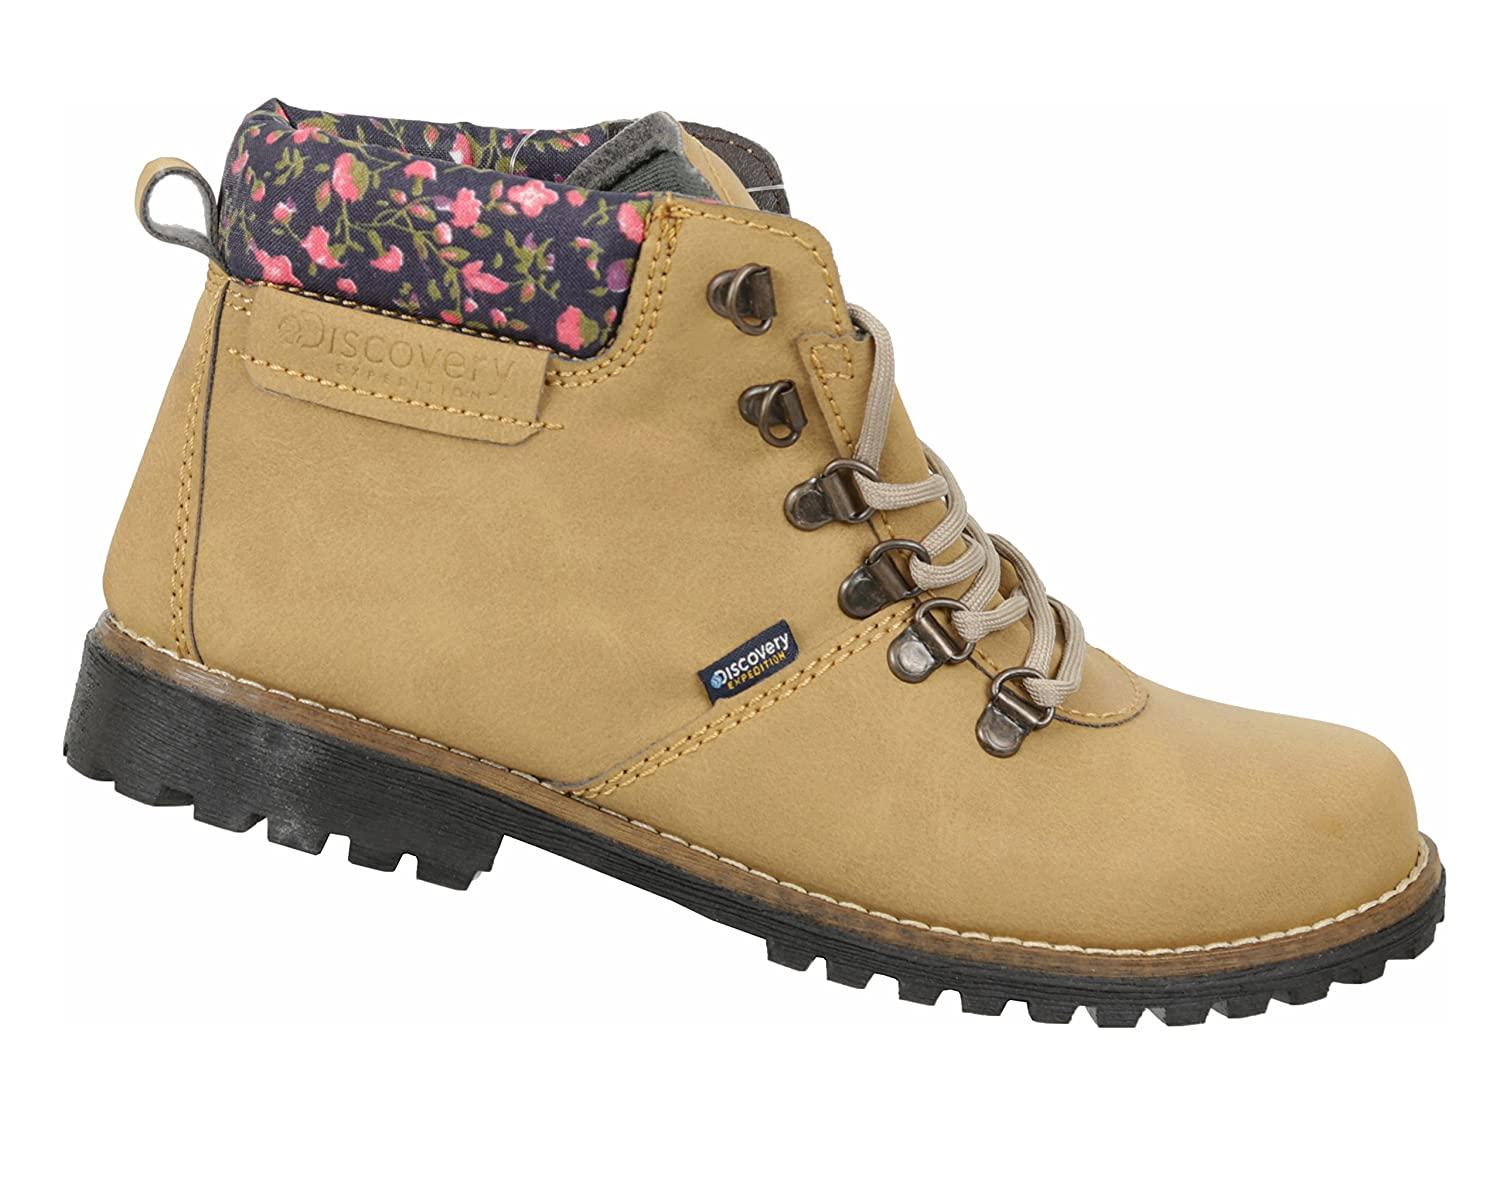 Discovery Expedition Women's Ankle High Outdoor Boot w/Fashion Patterened Trim B078JZDXC5 6 B(M) US|Honey-floral